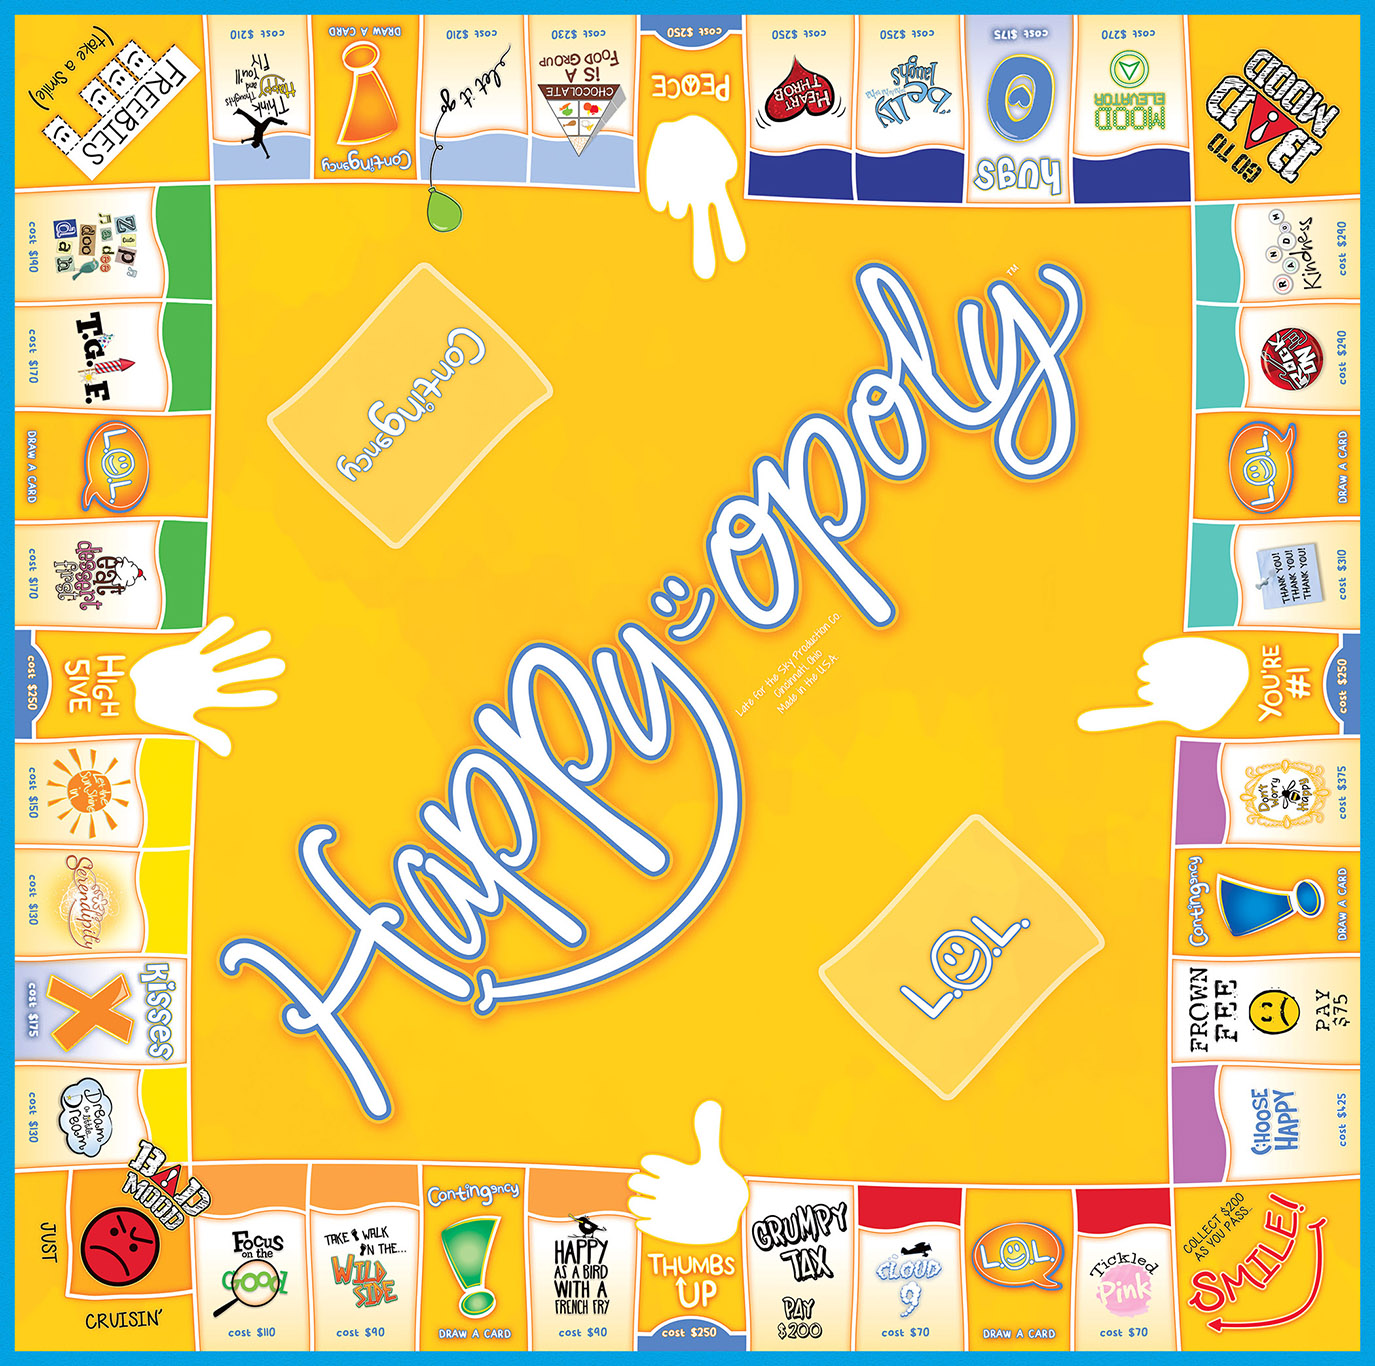 HAPPY-OPOLY Board Game